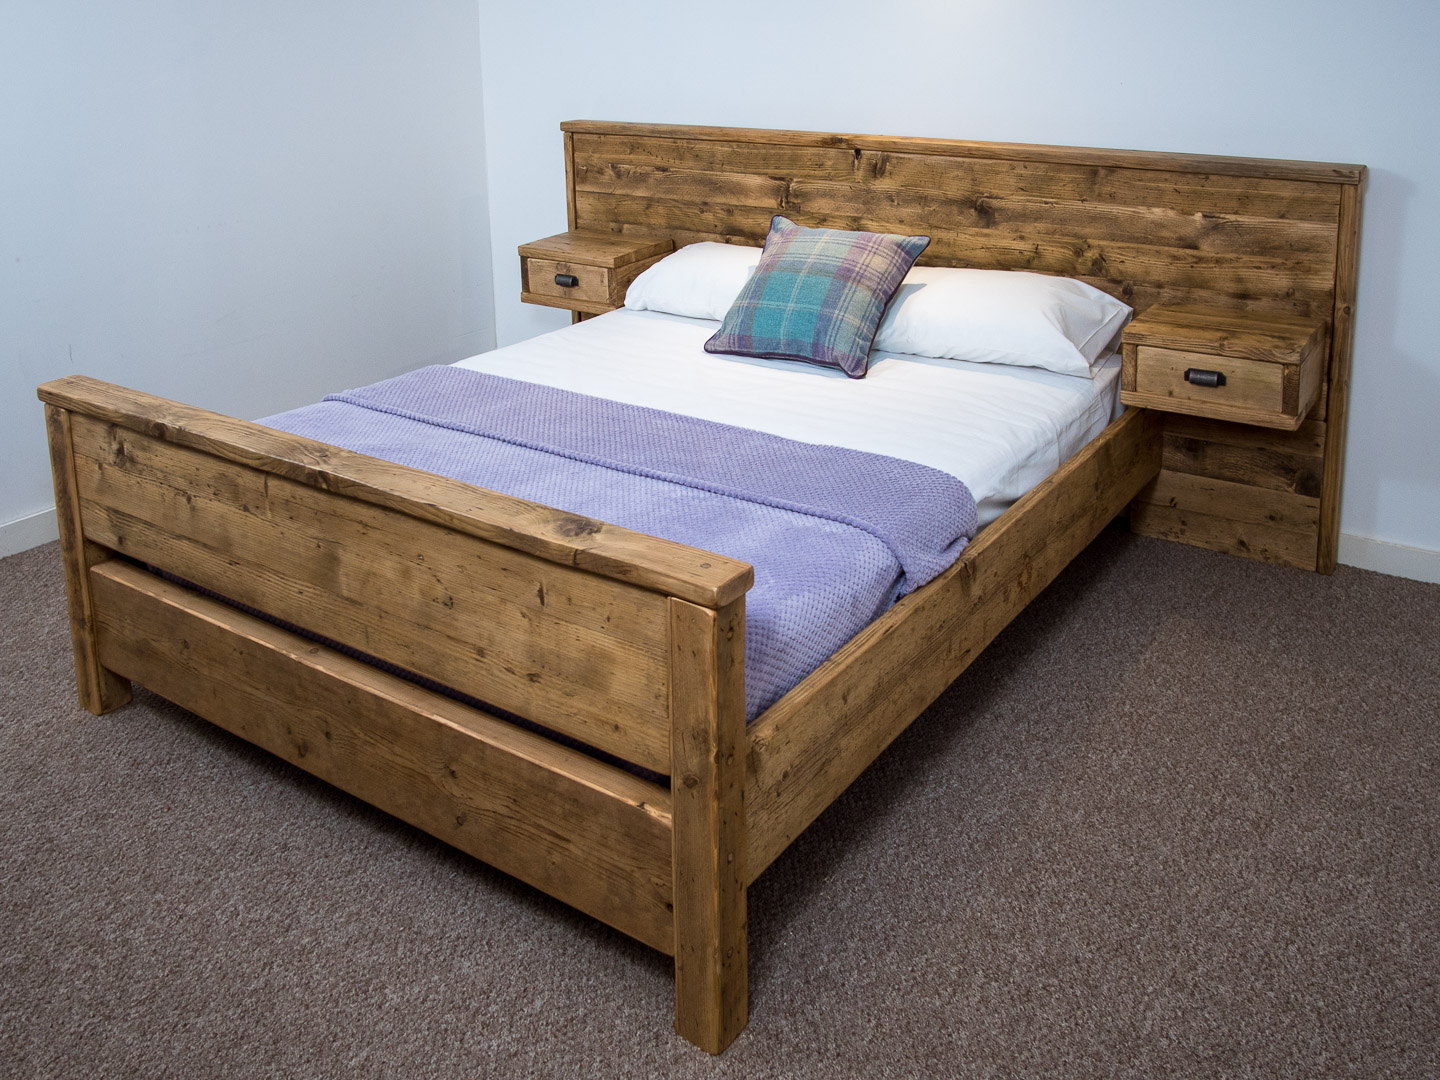 Bodmin High End Bed Frame Chunky Solid Rustic Pine Wood With Headboard All Sizes Available Free Uk Delivery